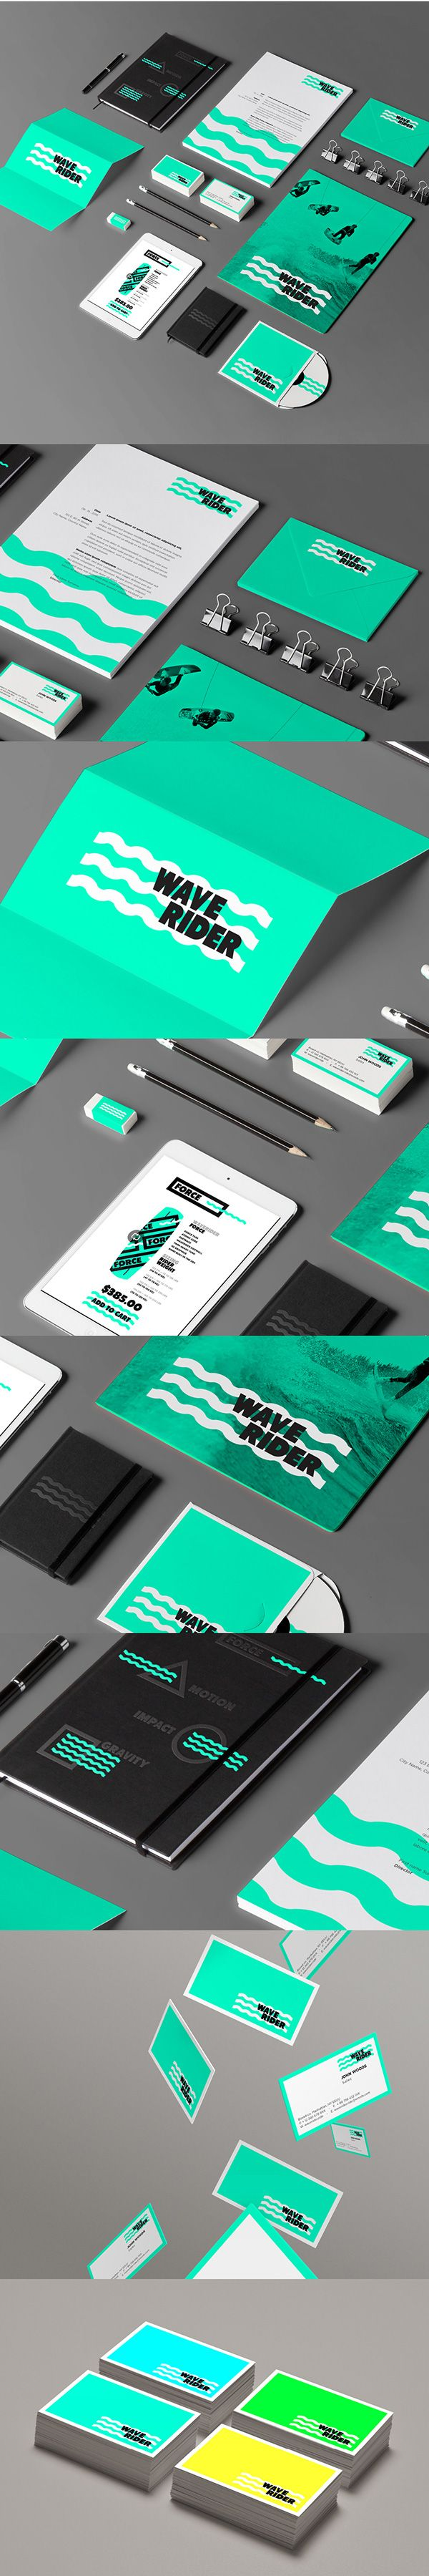 Visual Identity and Branding Series : WAVE RIDER